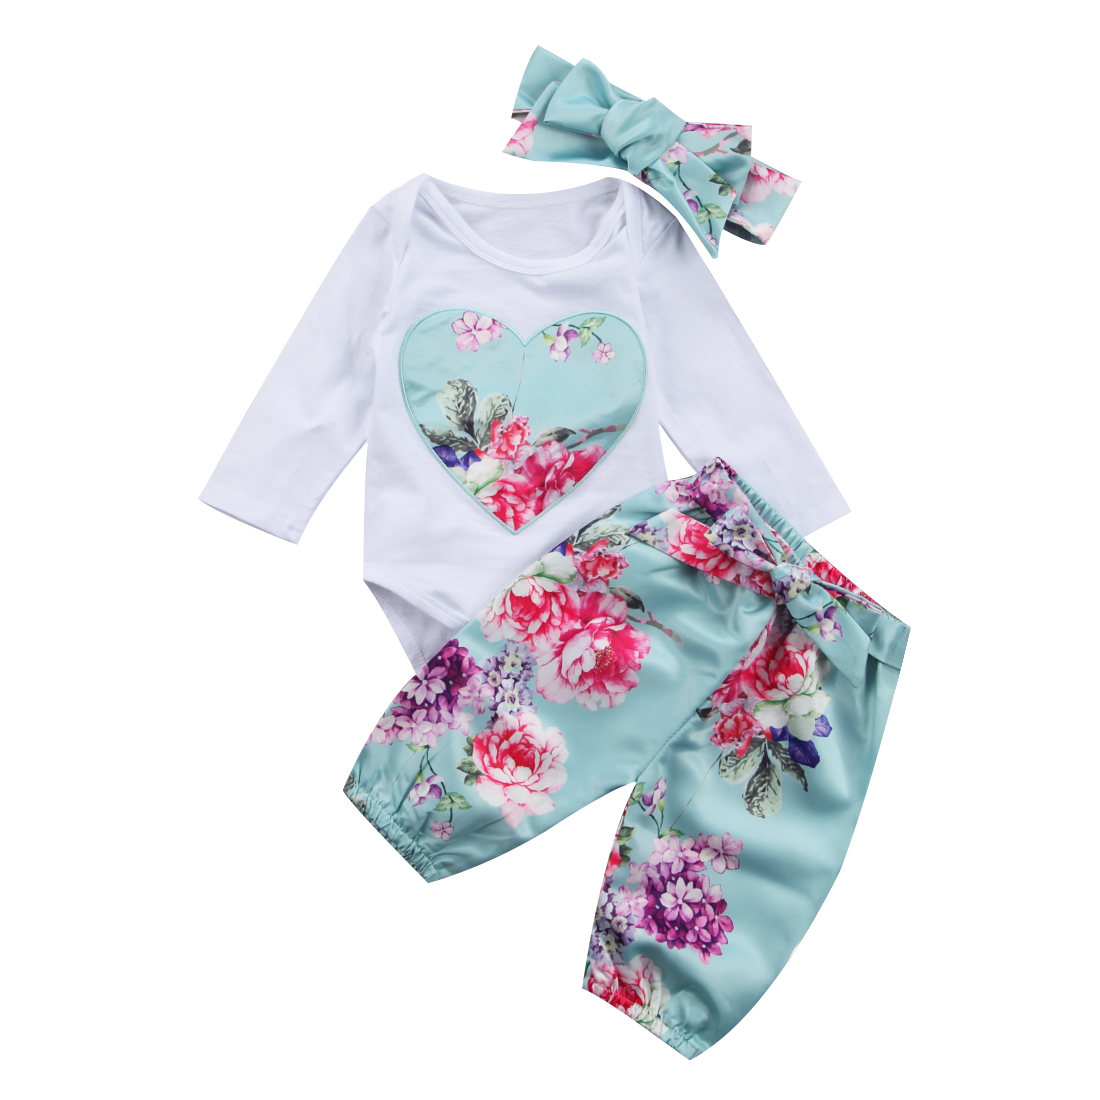 Baby Girls Clothing Sets Autumn Love heart Floral Newborn Baby Girls Clothes Long Sleeve Romper Jumpsuit Pants +headband Outfits toddler baby girls romper jumpsuit playsuit infant headband clothes outfits set sleeve clothing children autumn summer